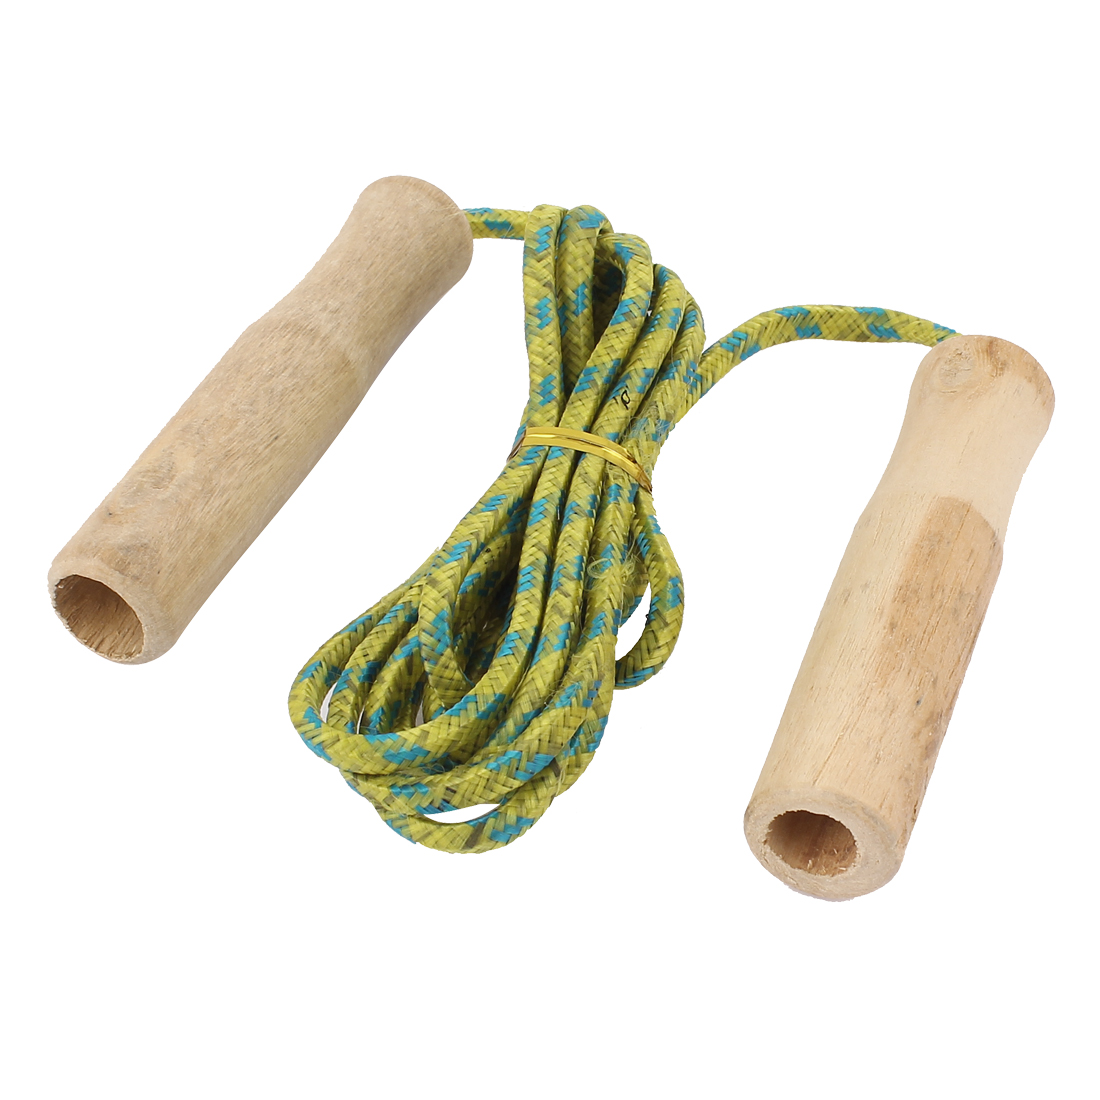 Wooden Handles Fitness Exercise Jump Skipping Rope